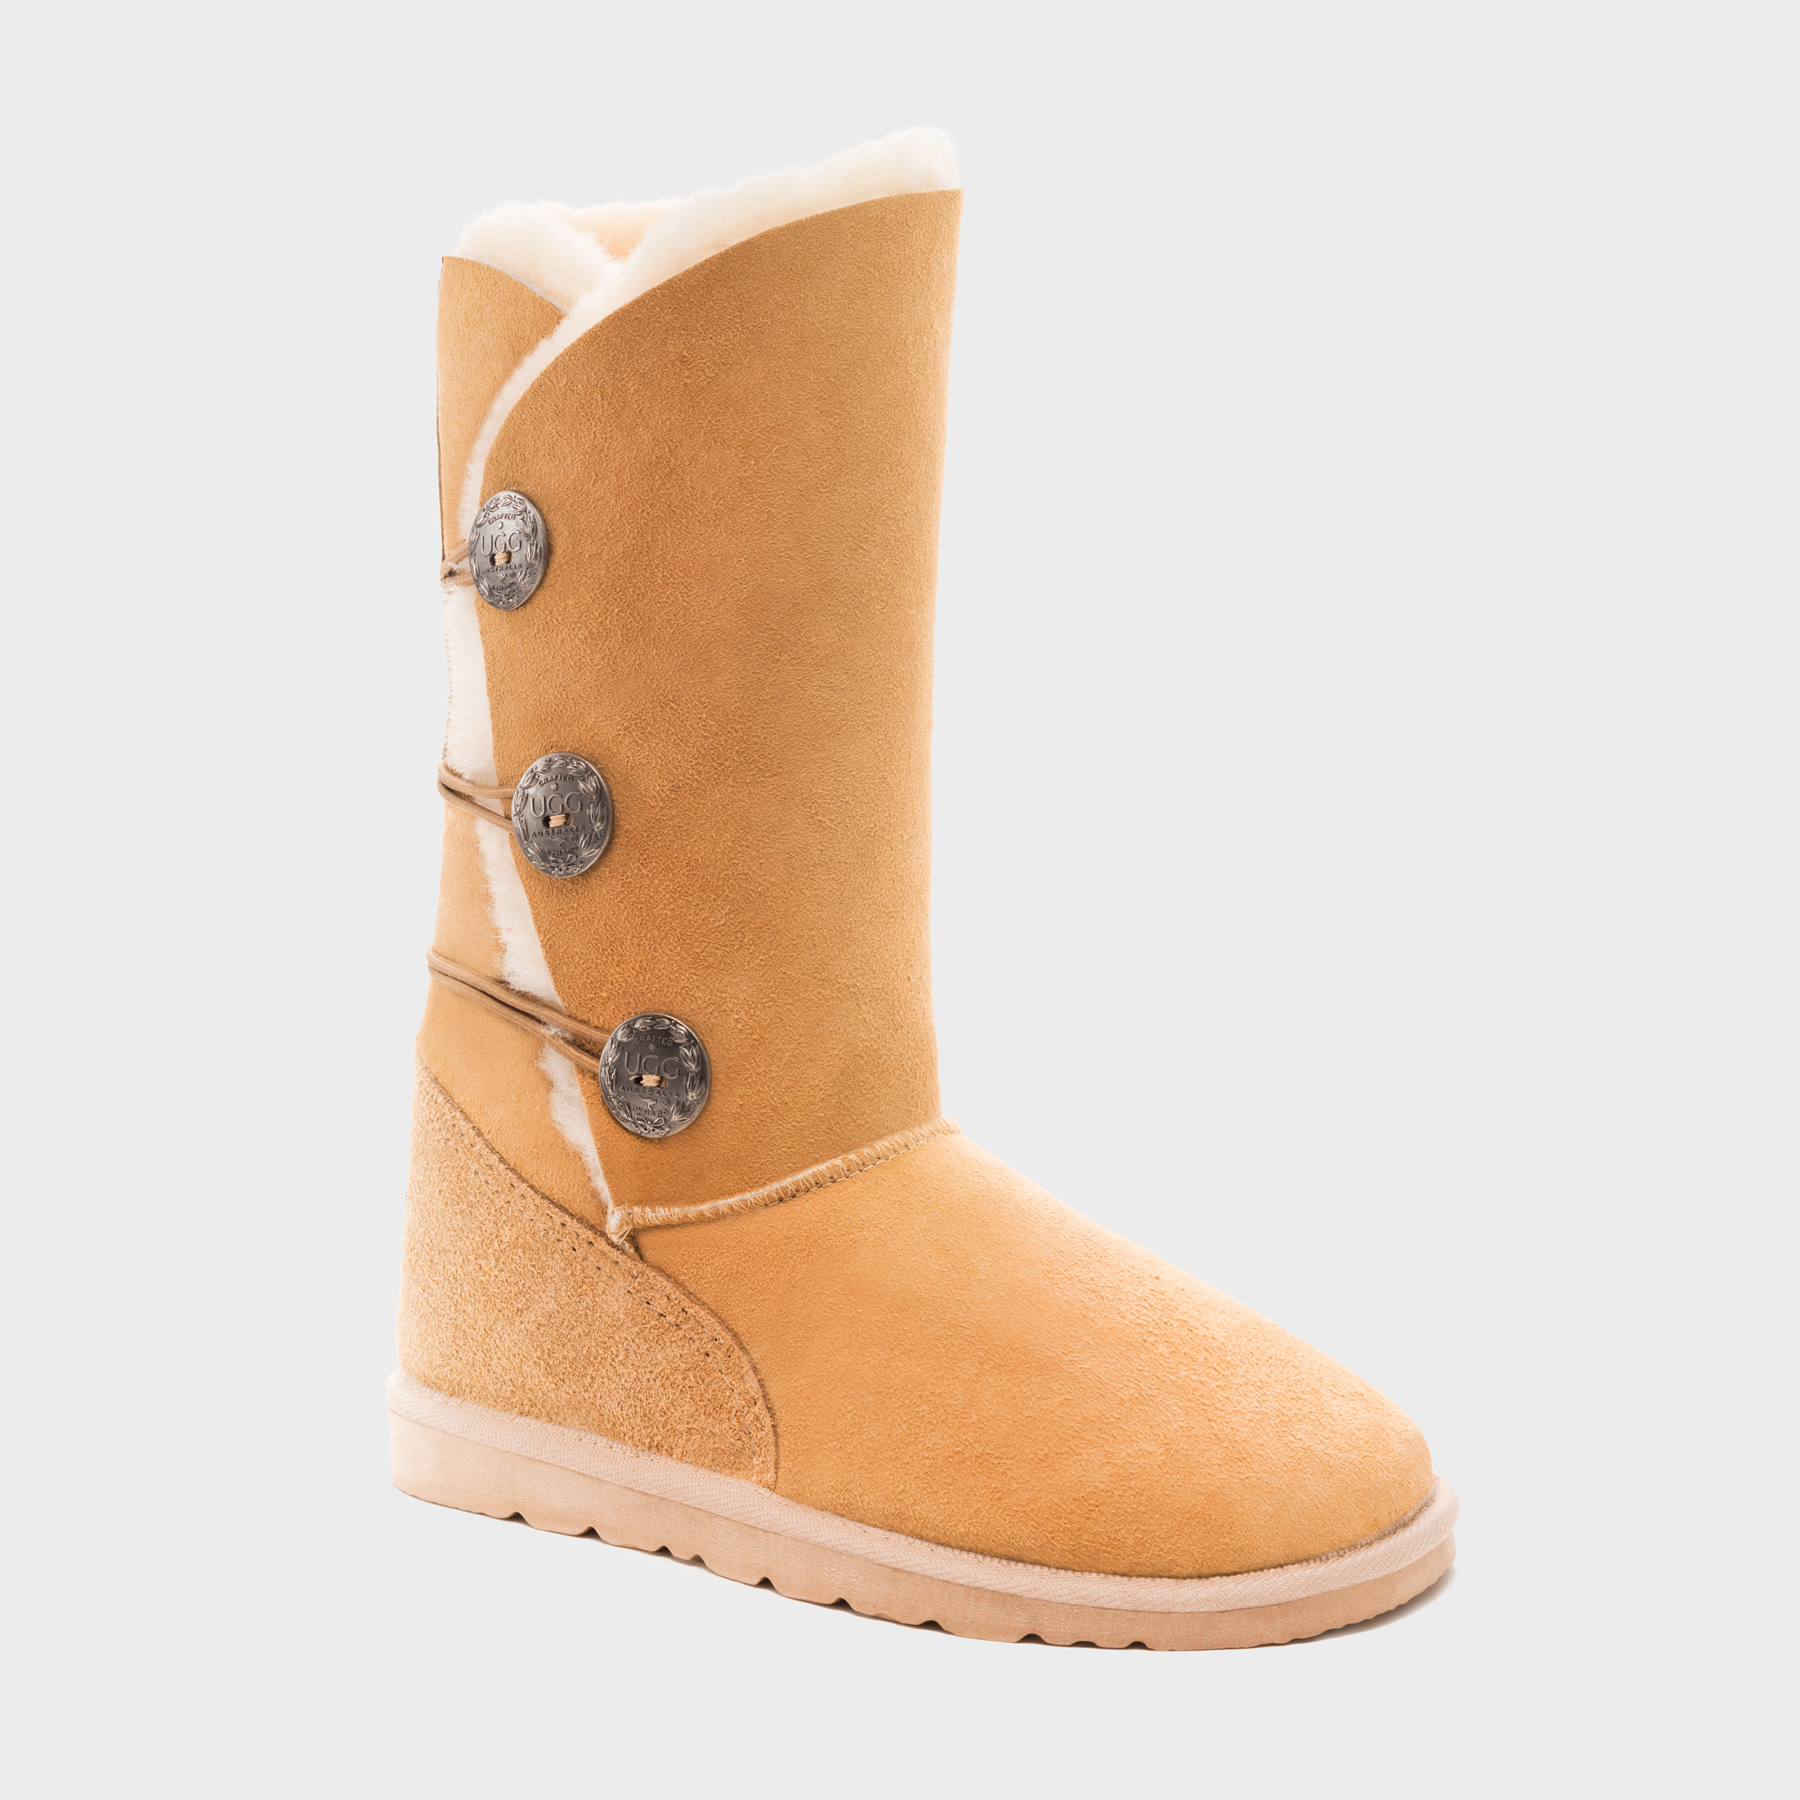 3a05a7d6bbe Ugg link – The Sheeps Back